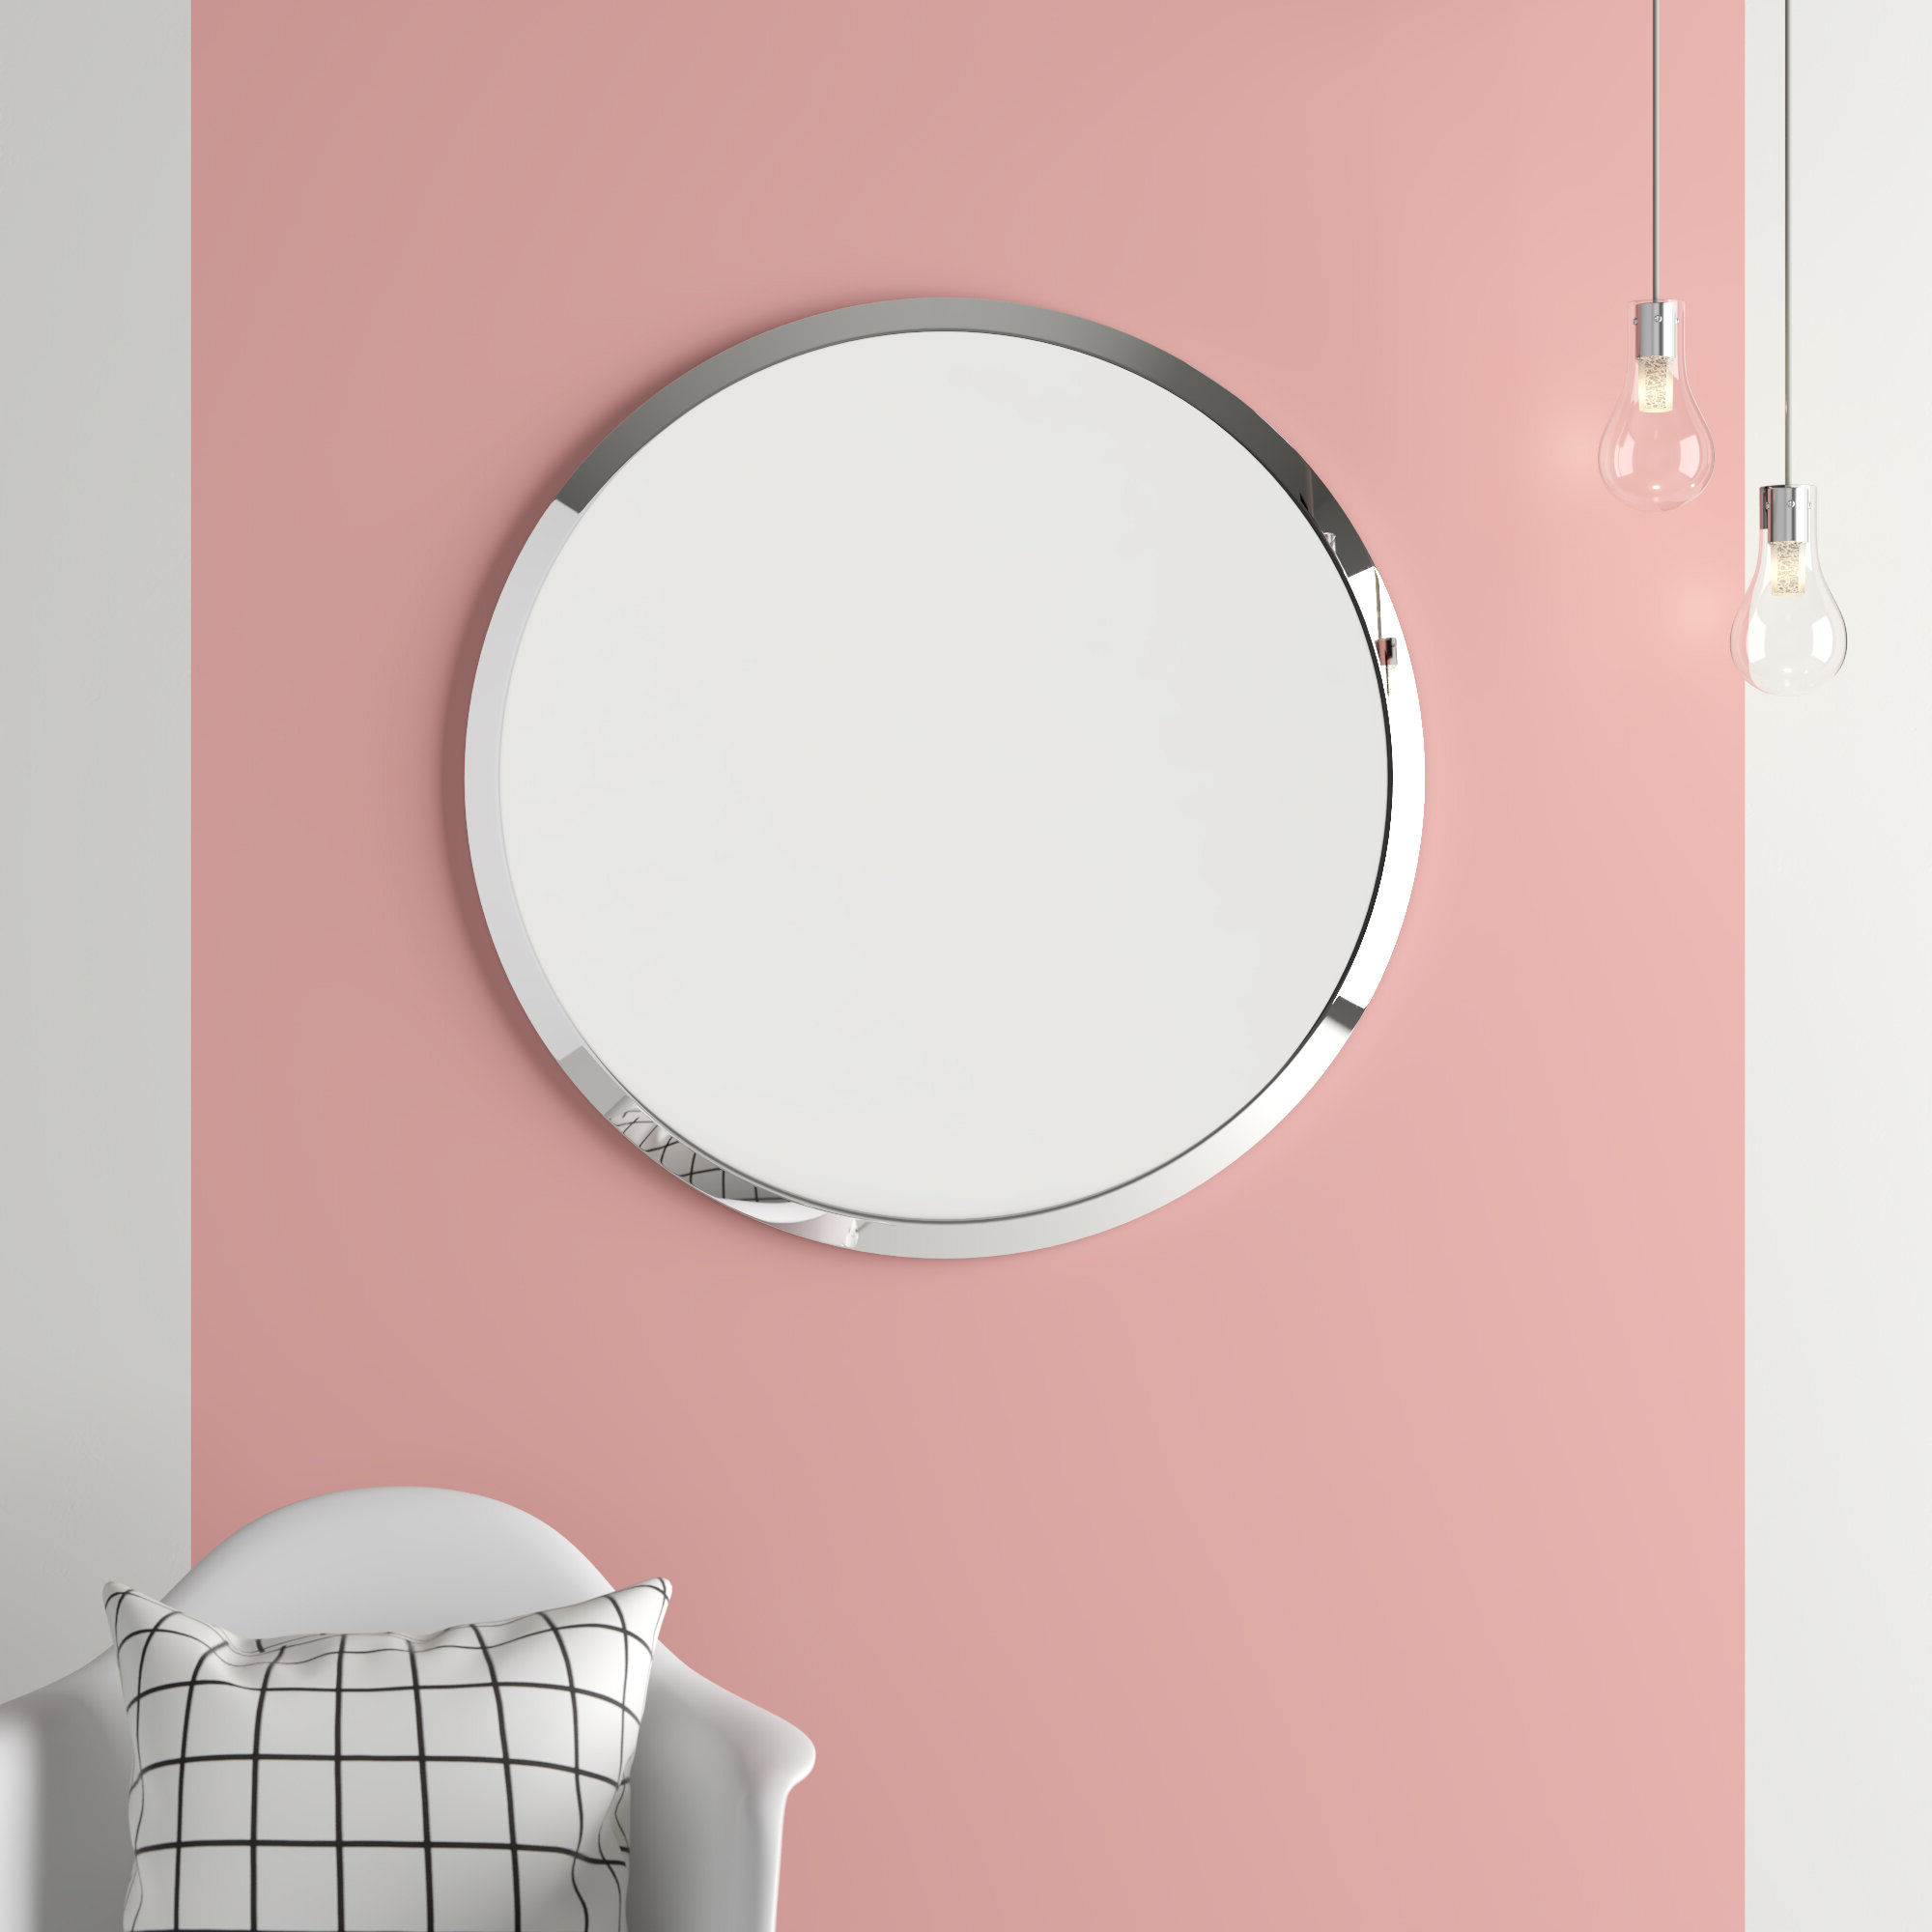 Recent Celeste Frameless Round Wall Mirror With Regard To Frameless Round Wall Mirrors (View 18 of 20)